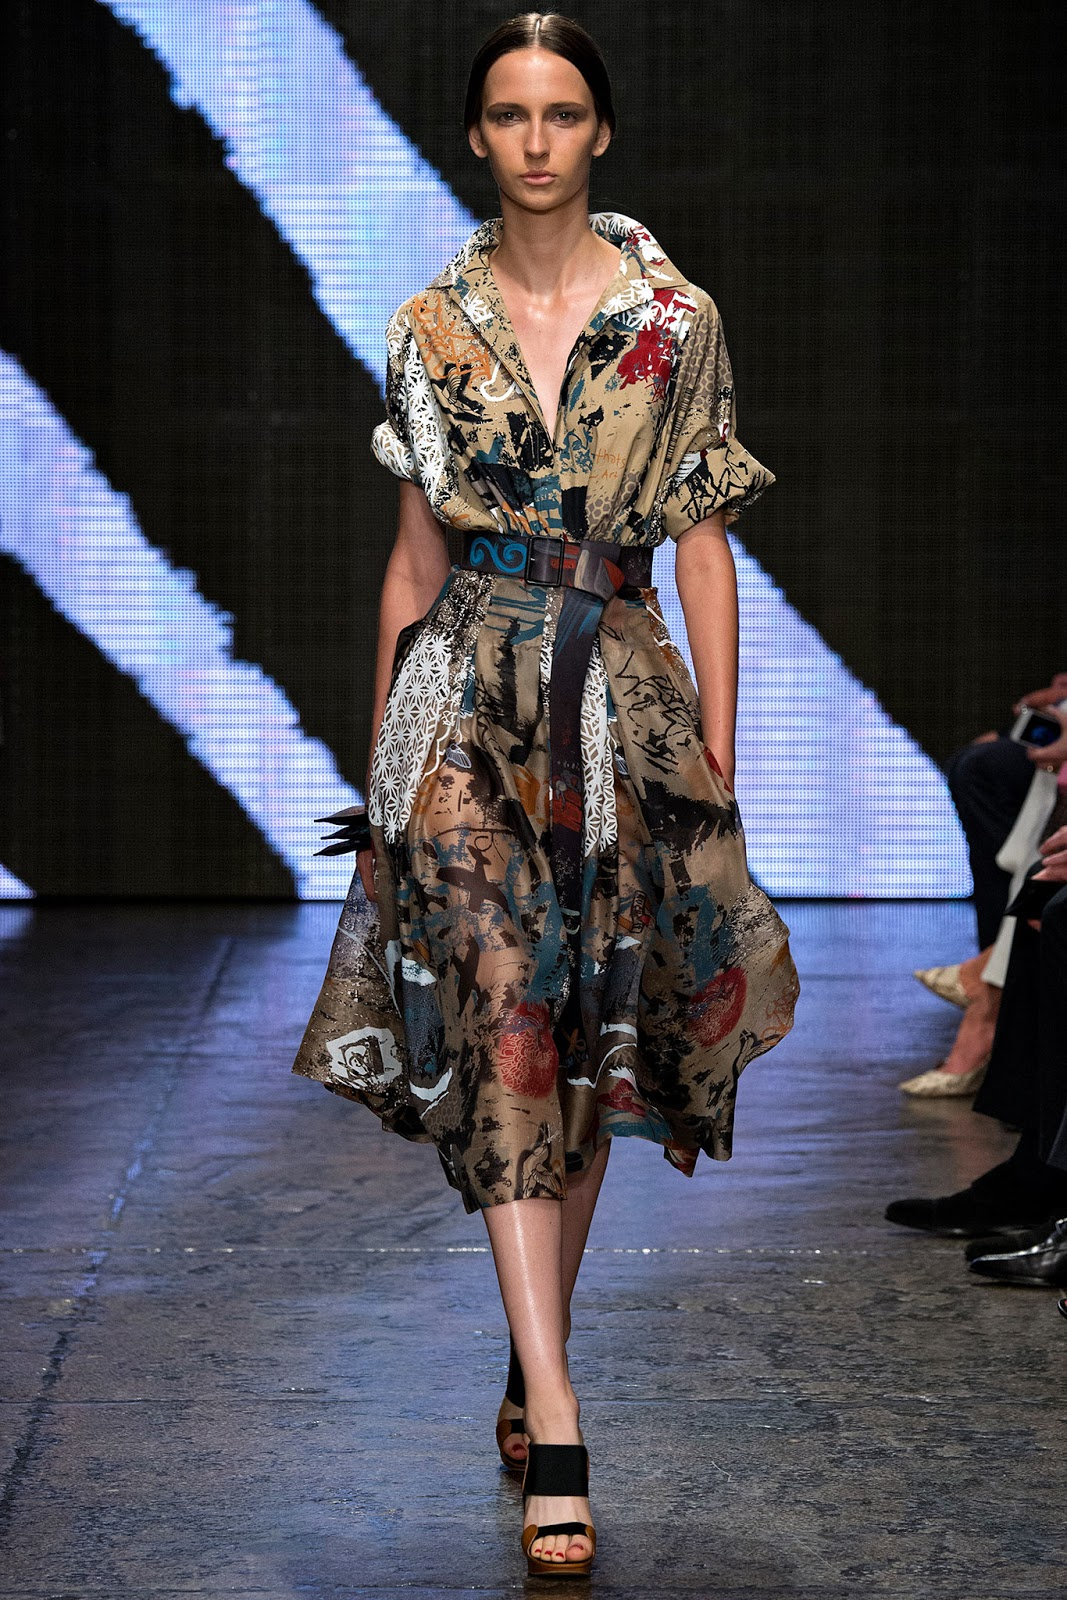 spring/summer 2015 trends / shirtdress / history of shirt dress / donna karan spring 2015 / via fashioned by love british fashion blog